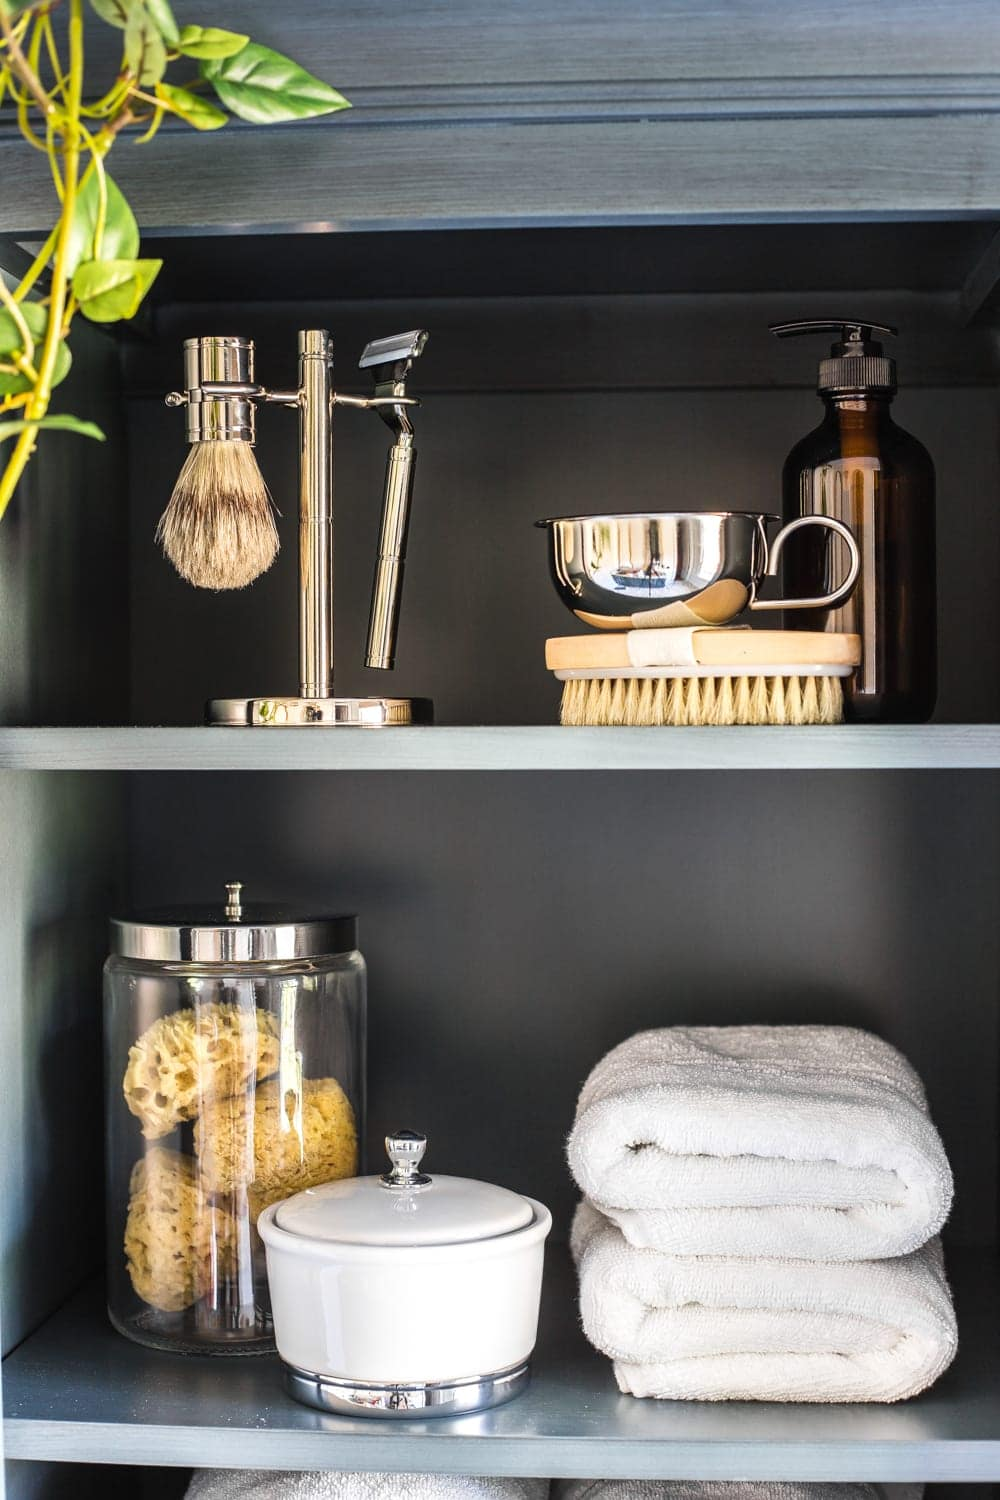 How to Turn a Cabinet Into a Hamper in Seconds | bathroom linen cabinet tower with styled shelves